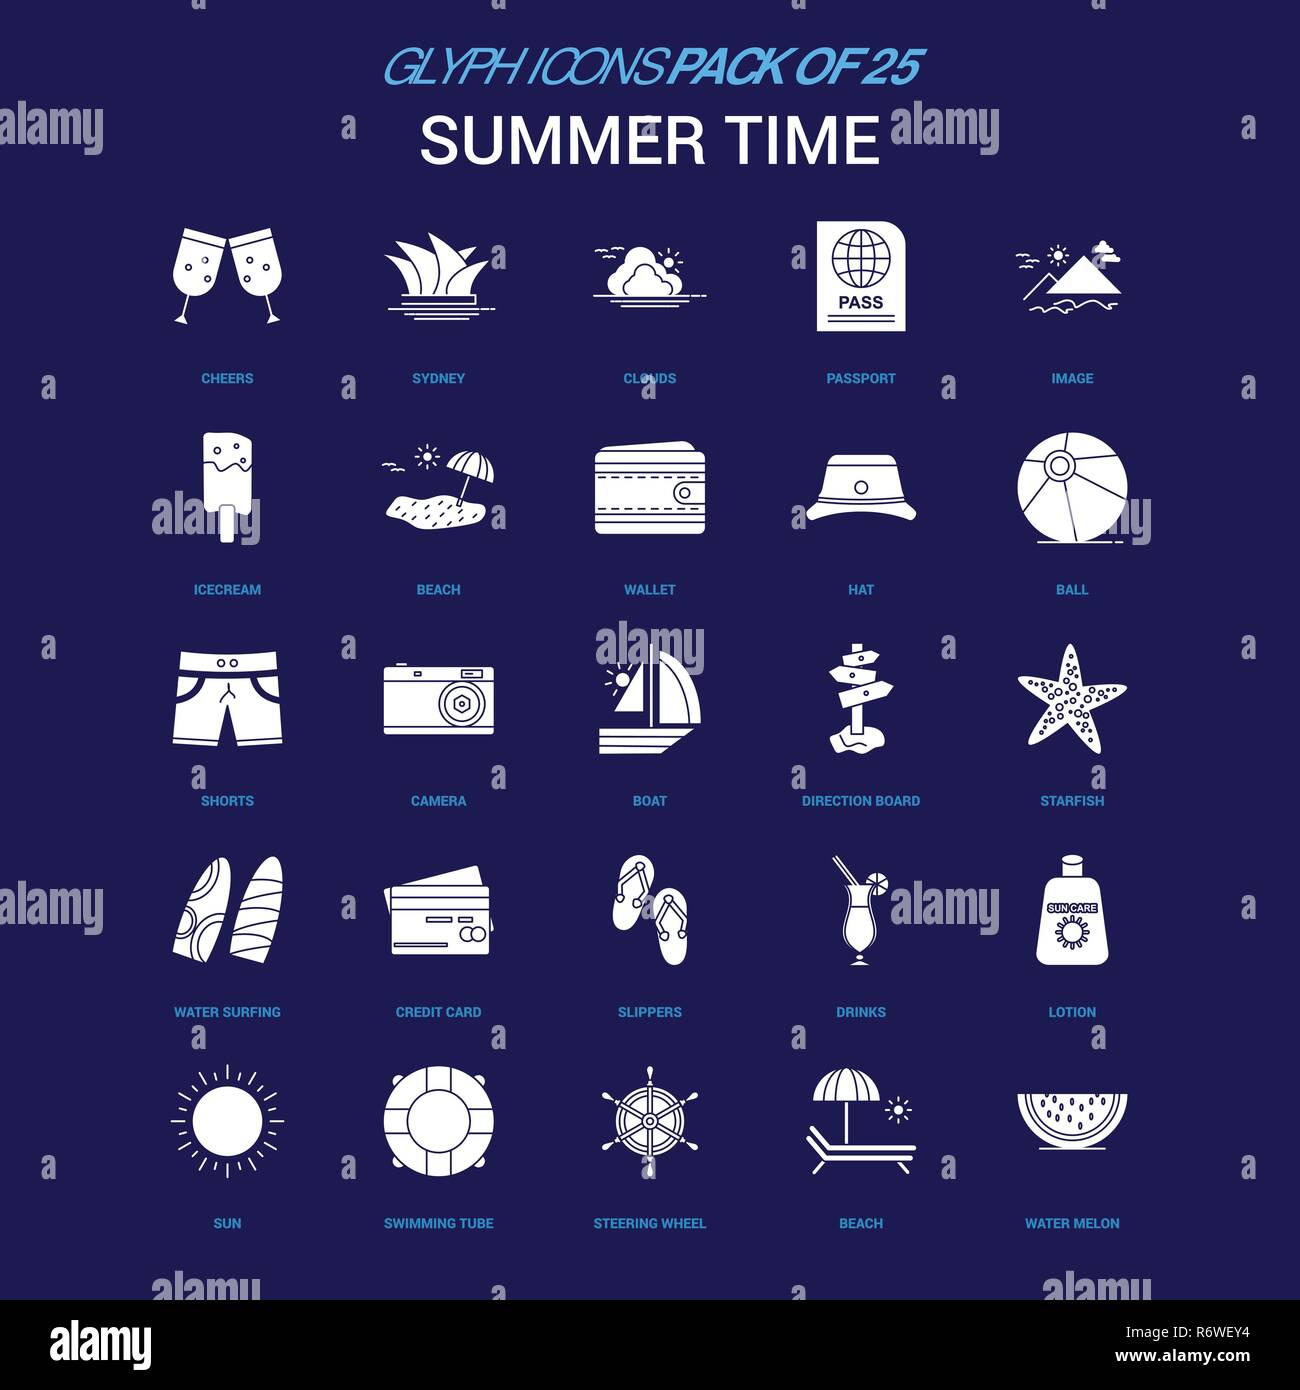 Summer Time White icon over Blue background. 25 Icon Pack - Stock Vector